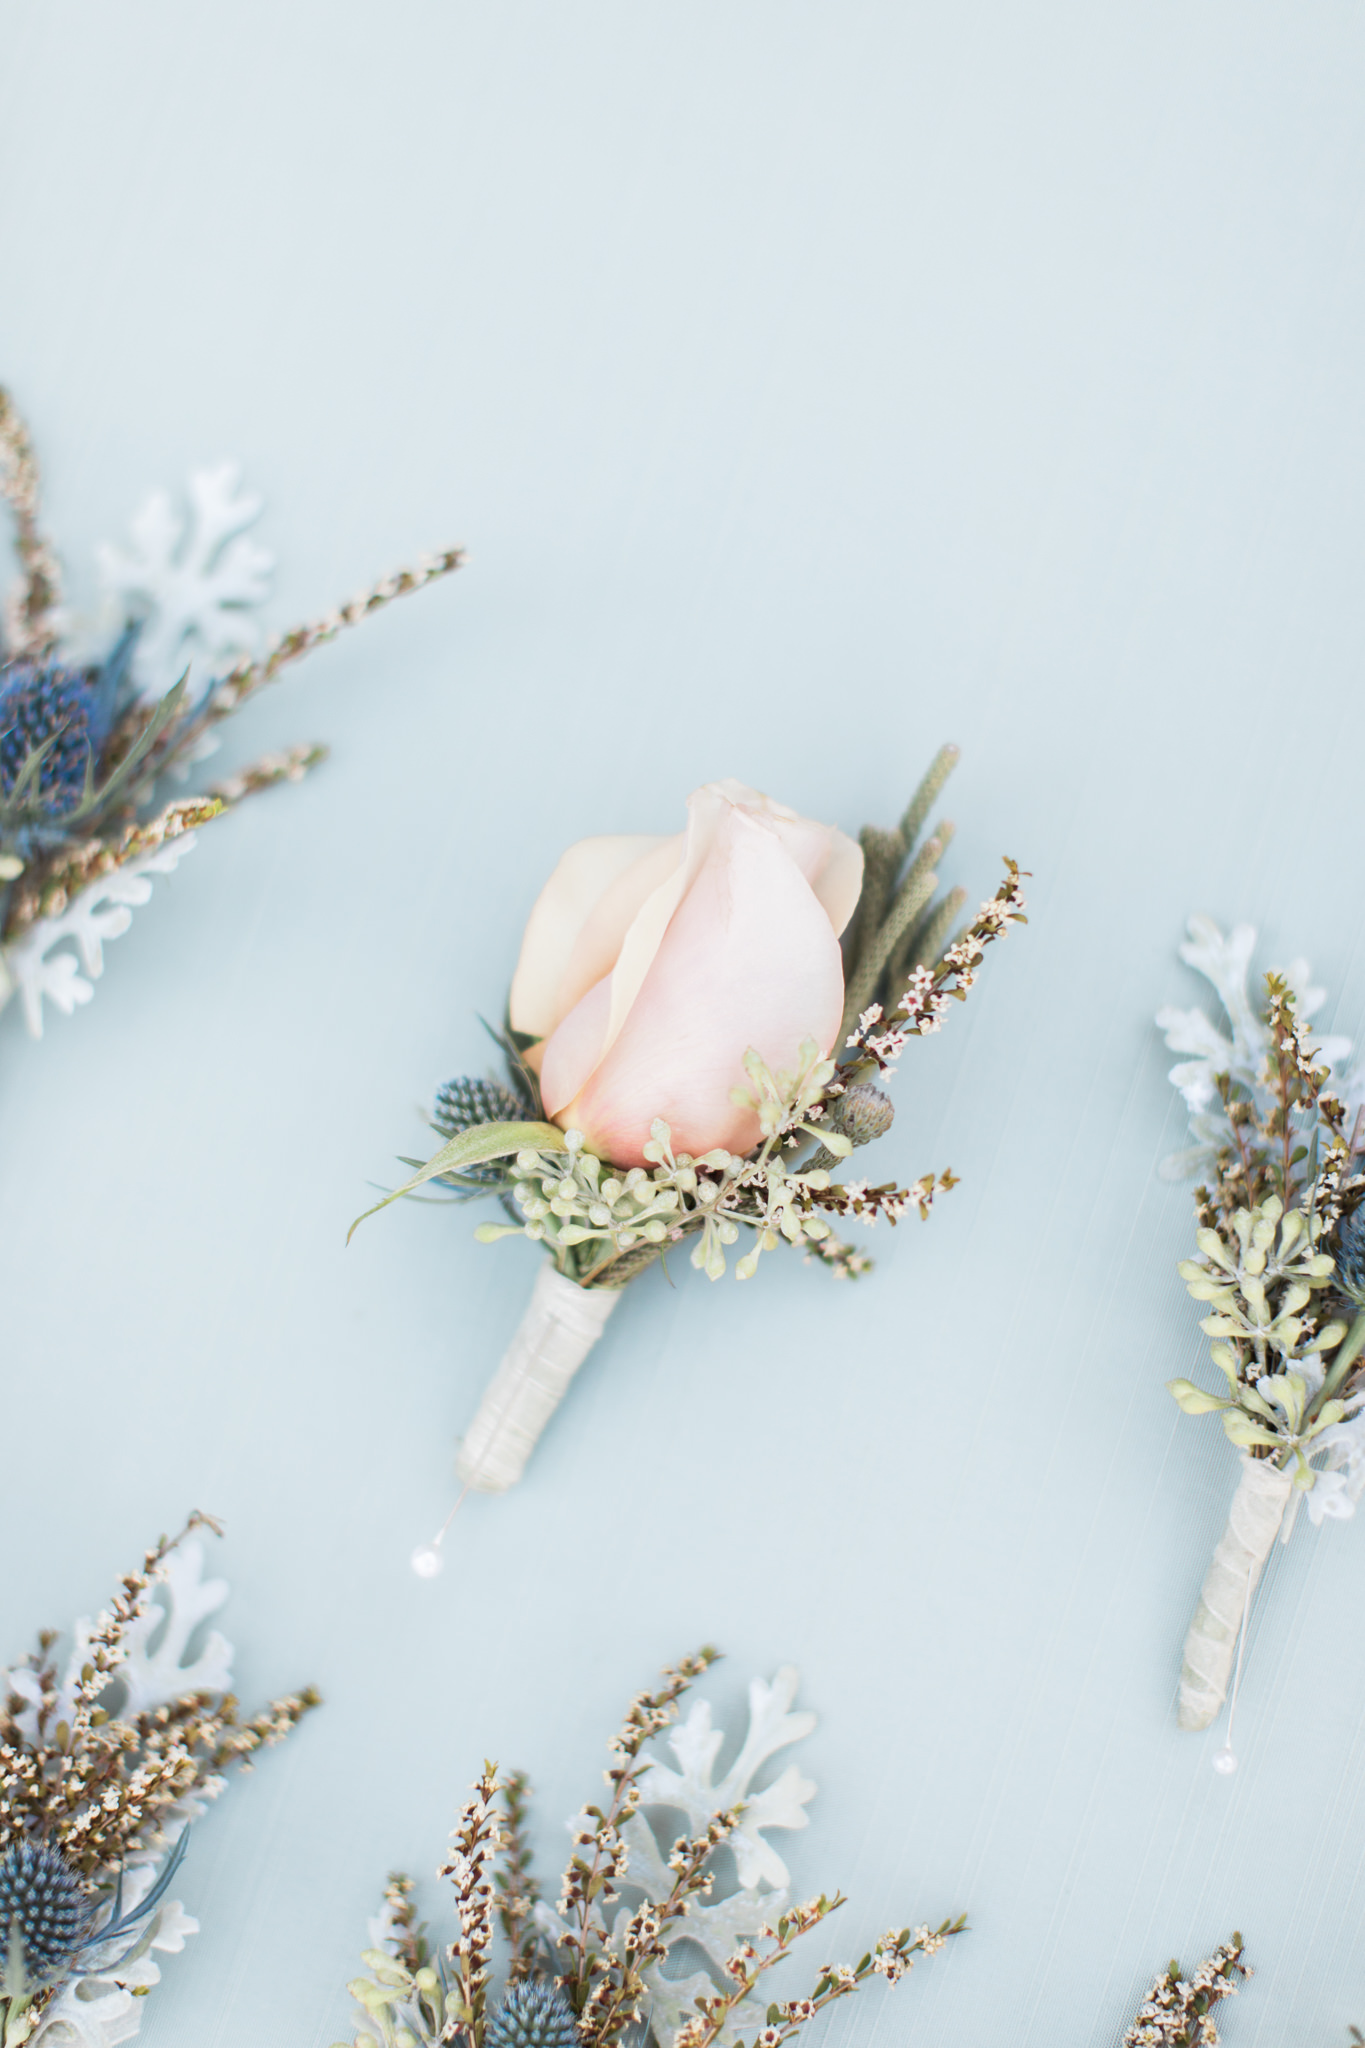 blush rose boutonnieres with greenery and white ribbon flat lay